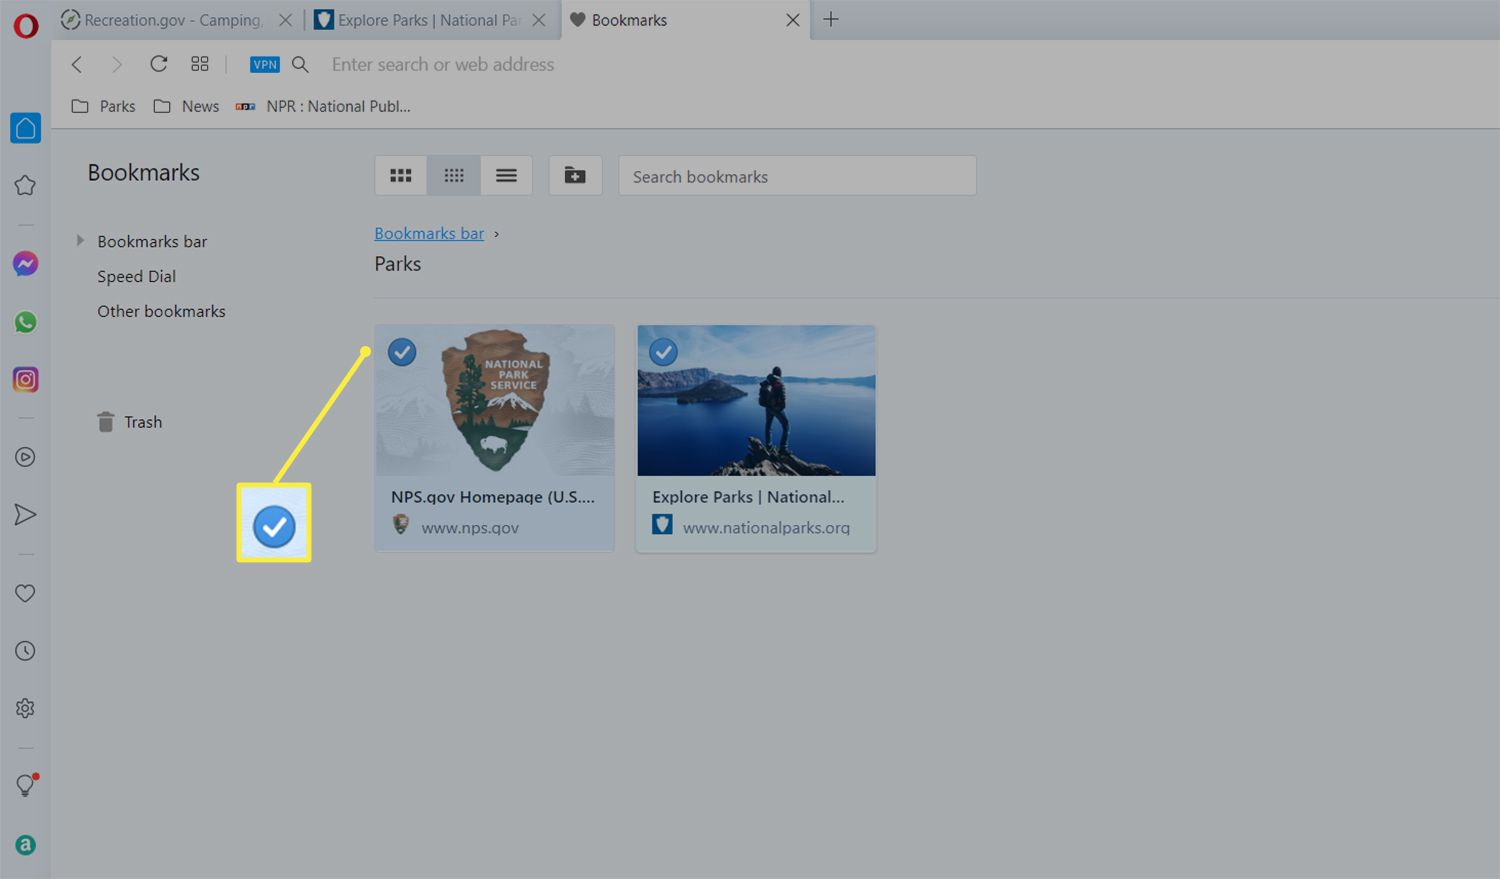 Checkmark highlighted next to bookmark in the Opera browser Bookmarks manager